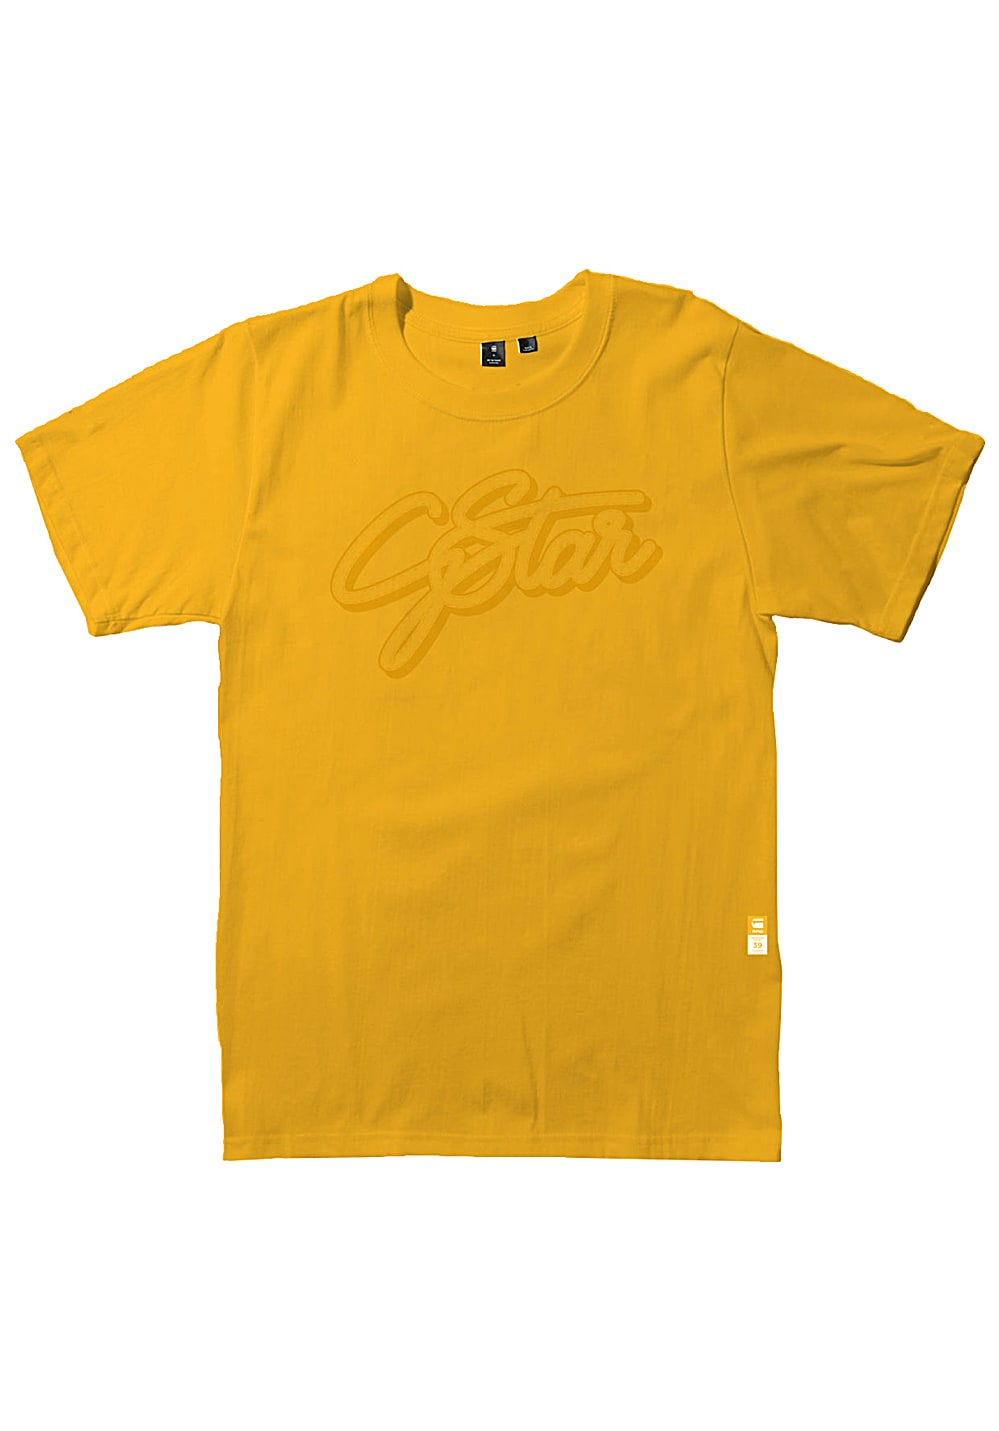 8bfc036ea7f G-STAR 03 - T-Shirt for Men - Yellow - Planet Sports